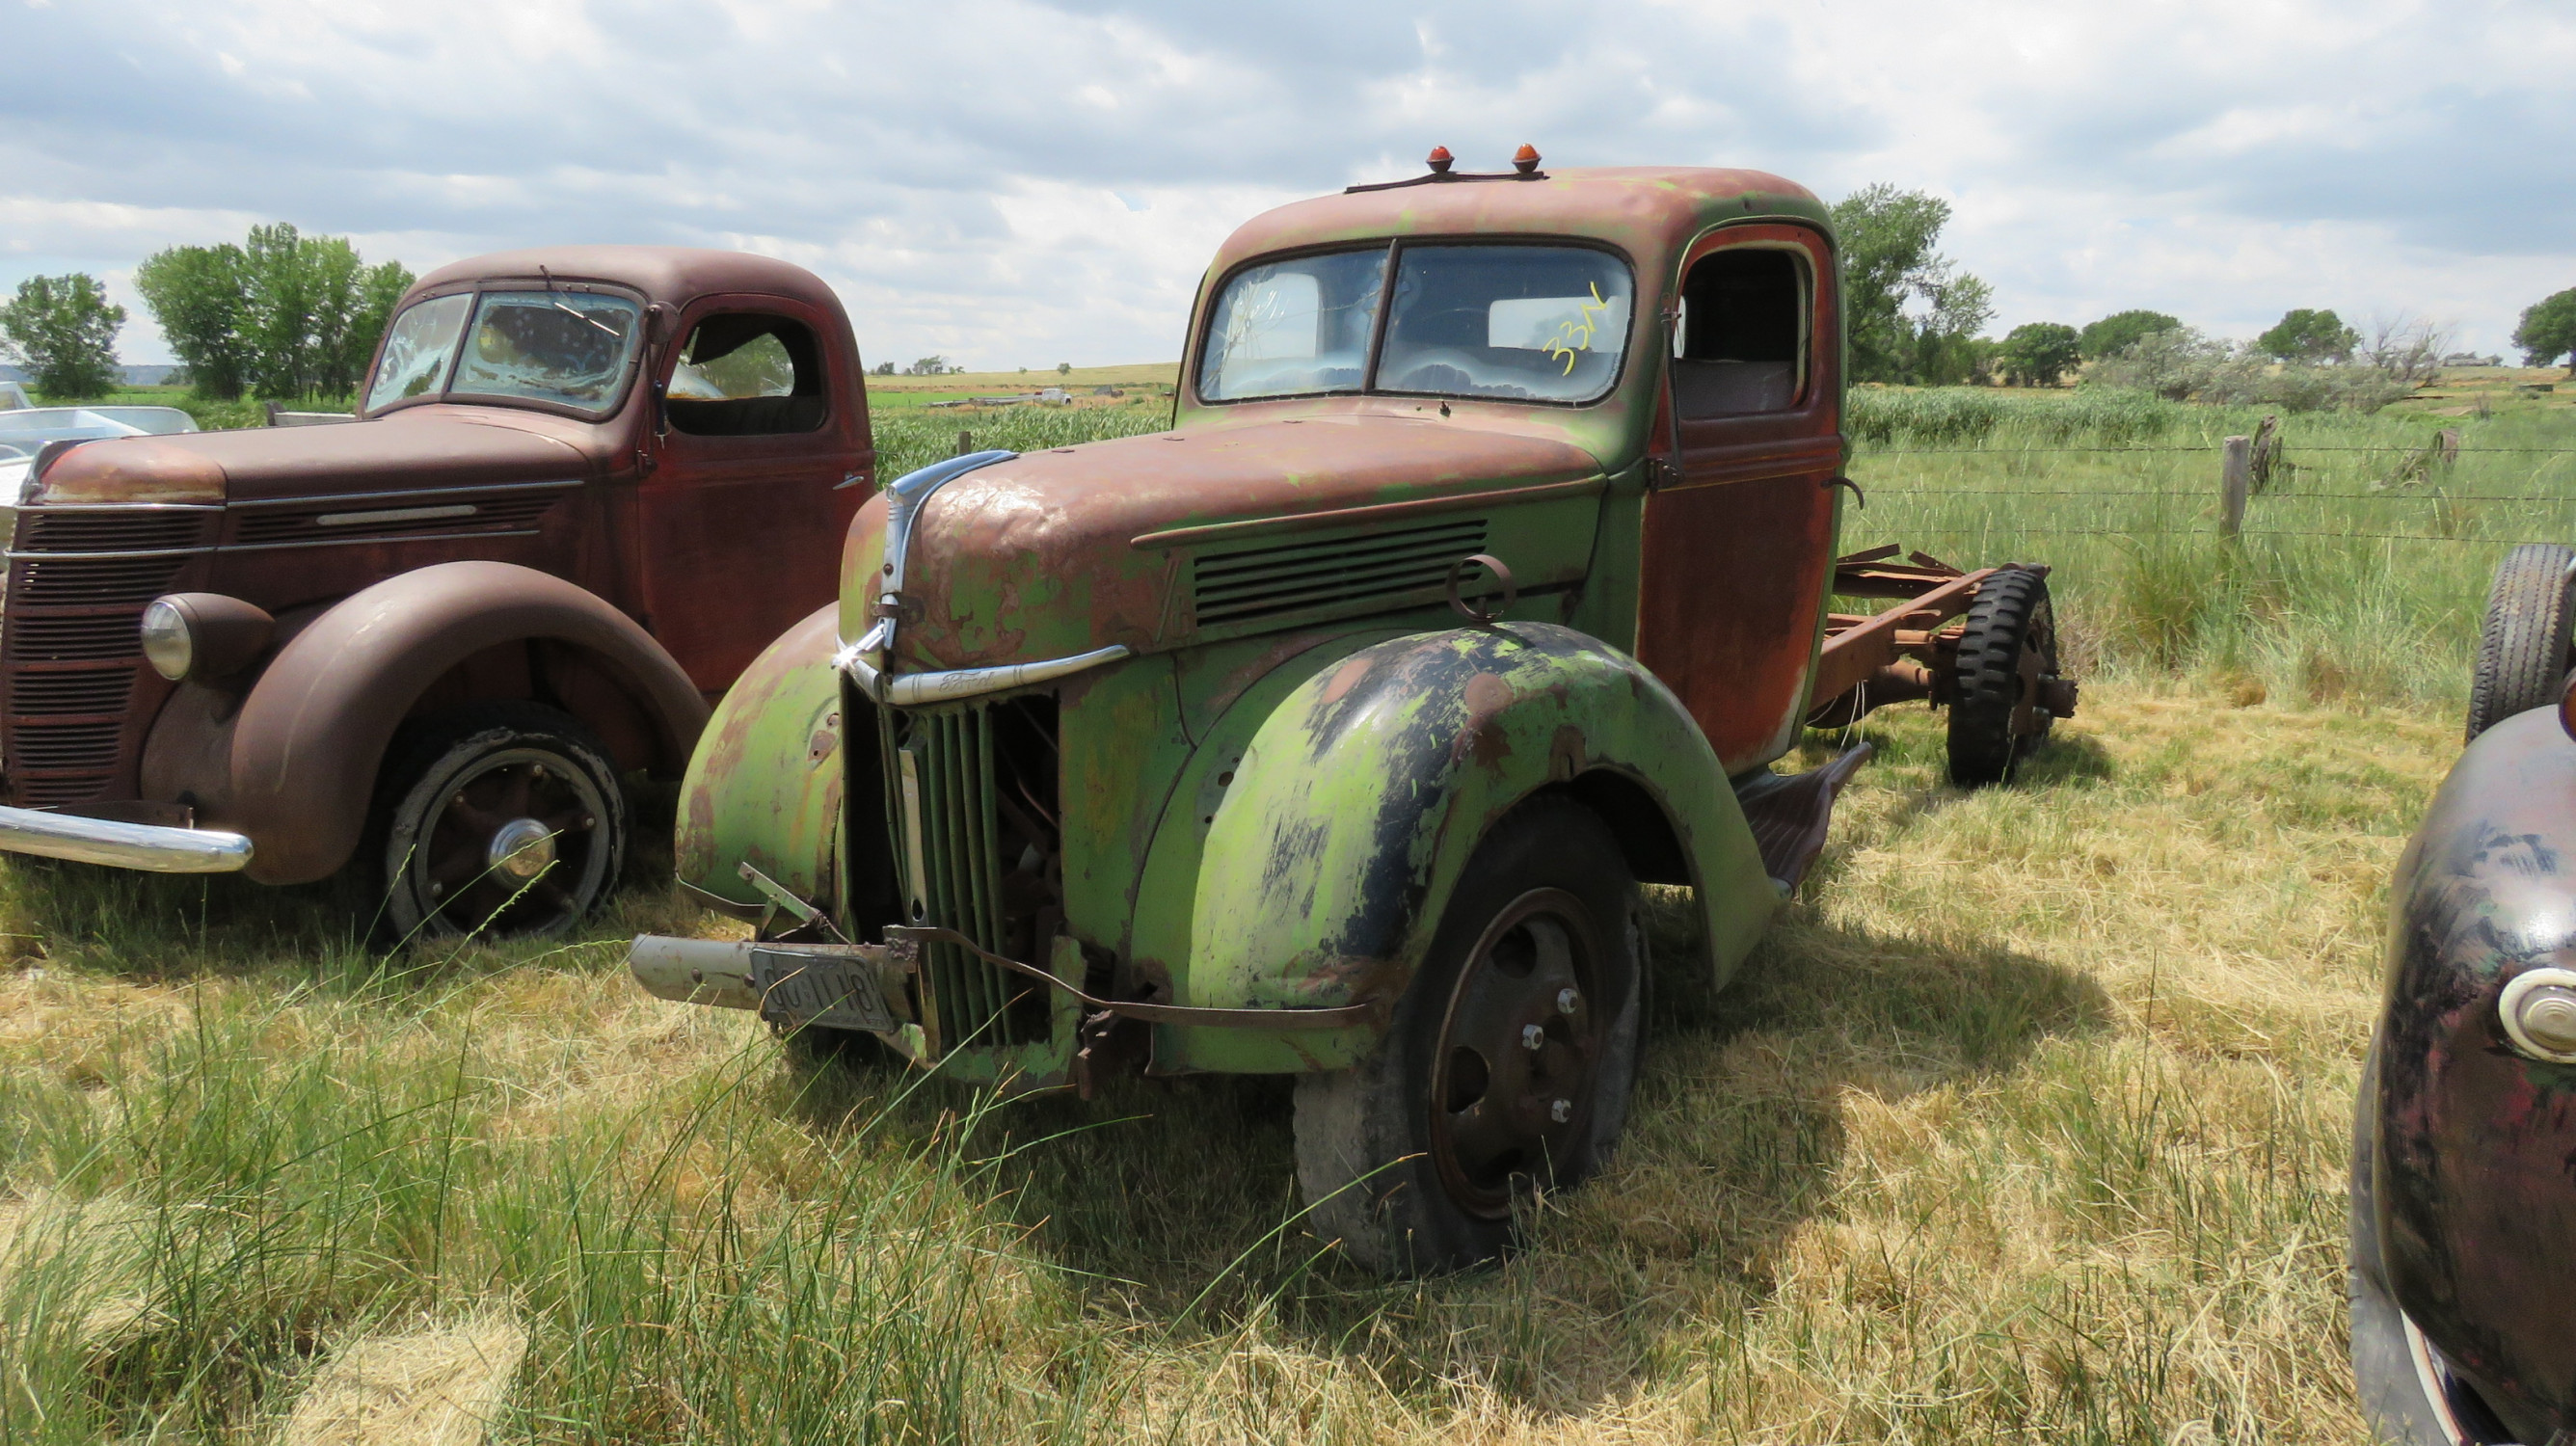 1940 FORD TRUCK FOR ROD OR RESTORE - Image 1